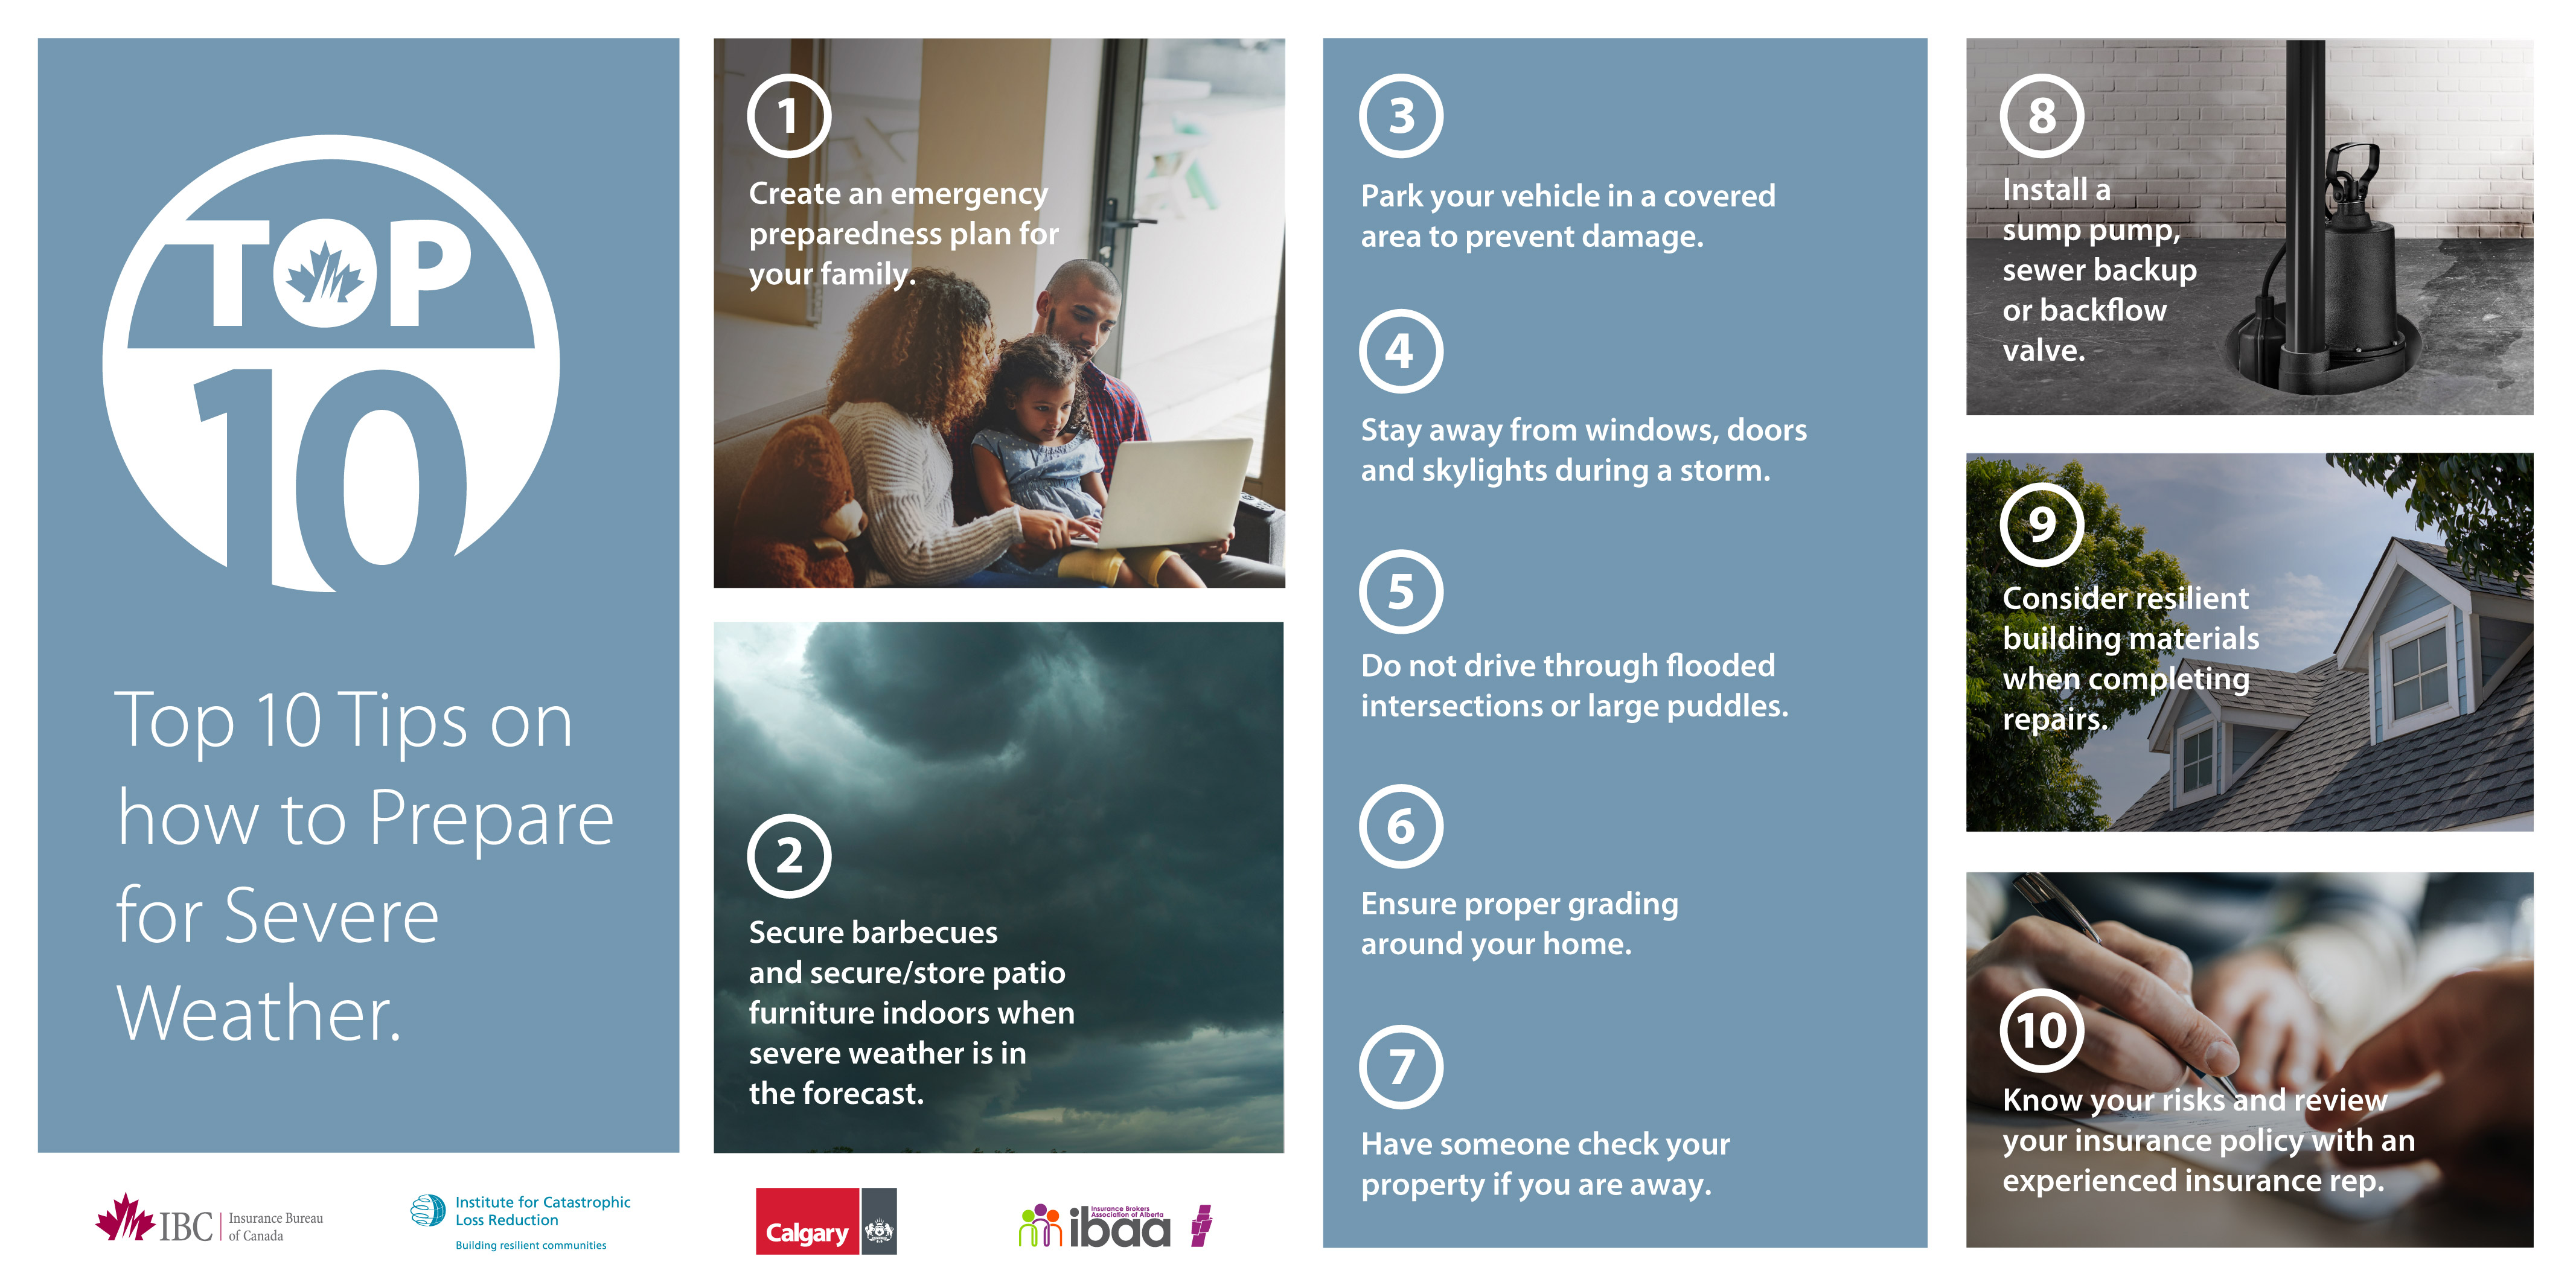 Top 10 Tips - Severe Weather